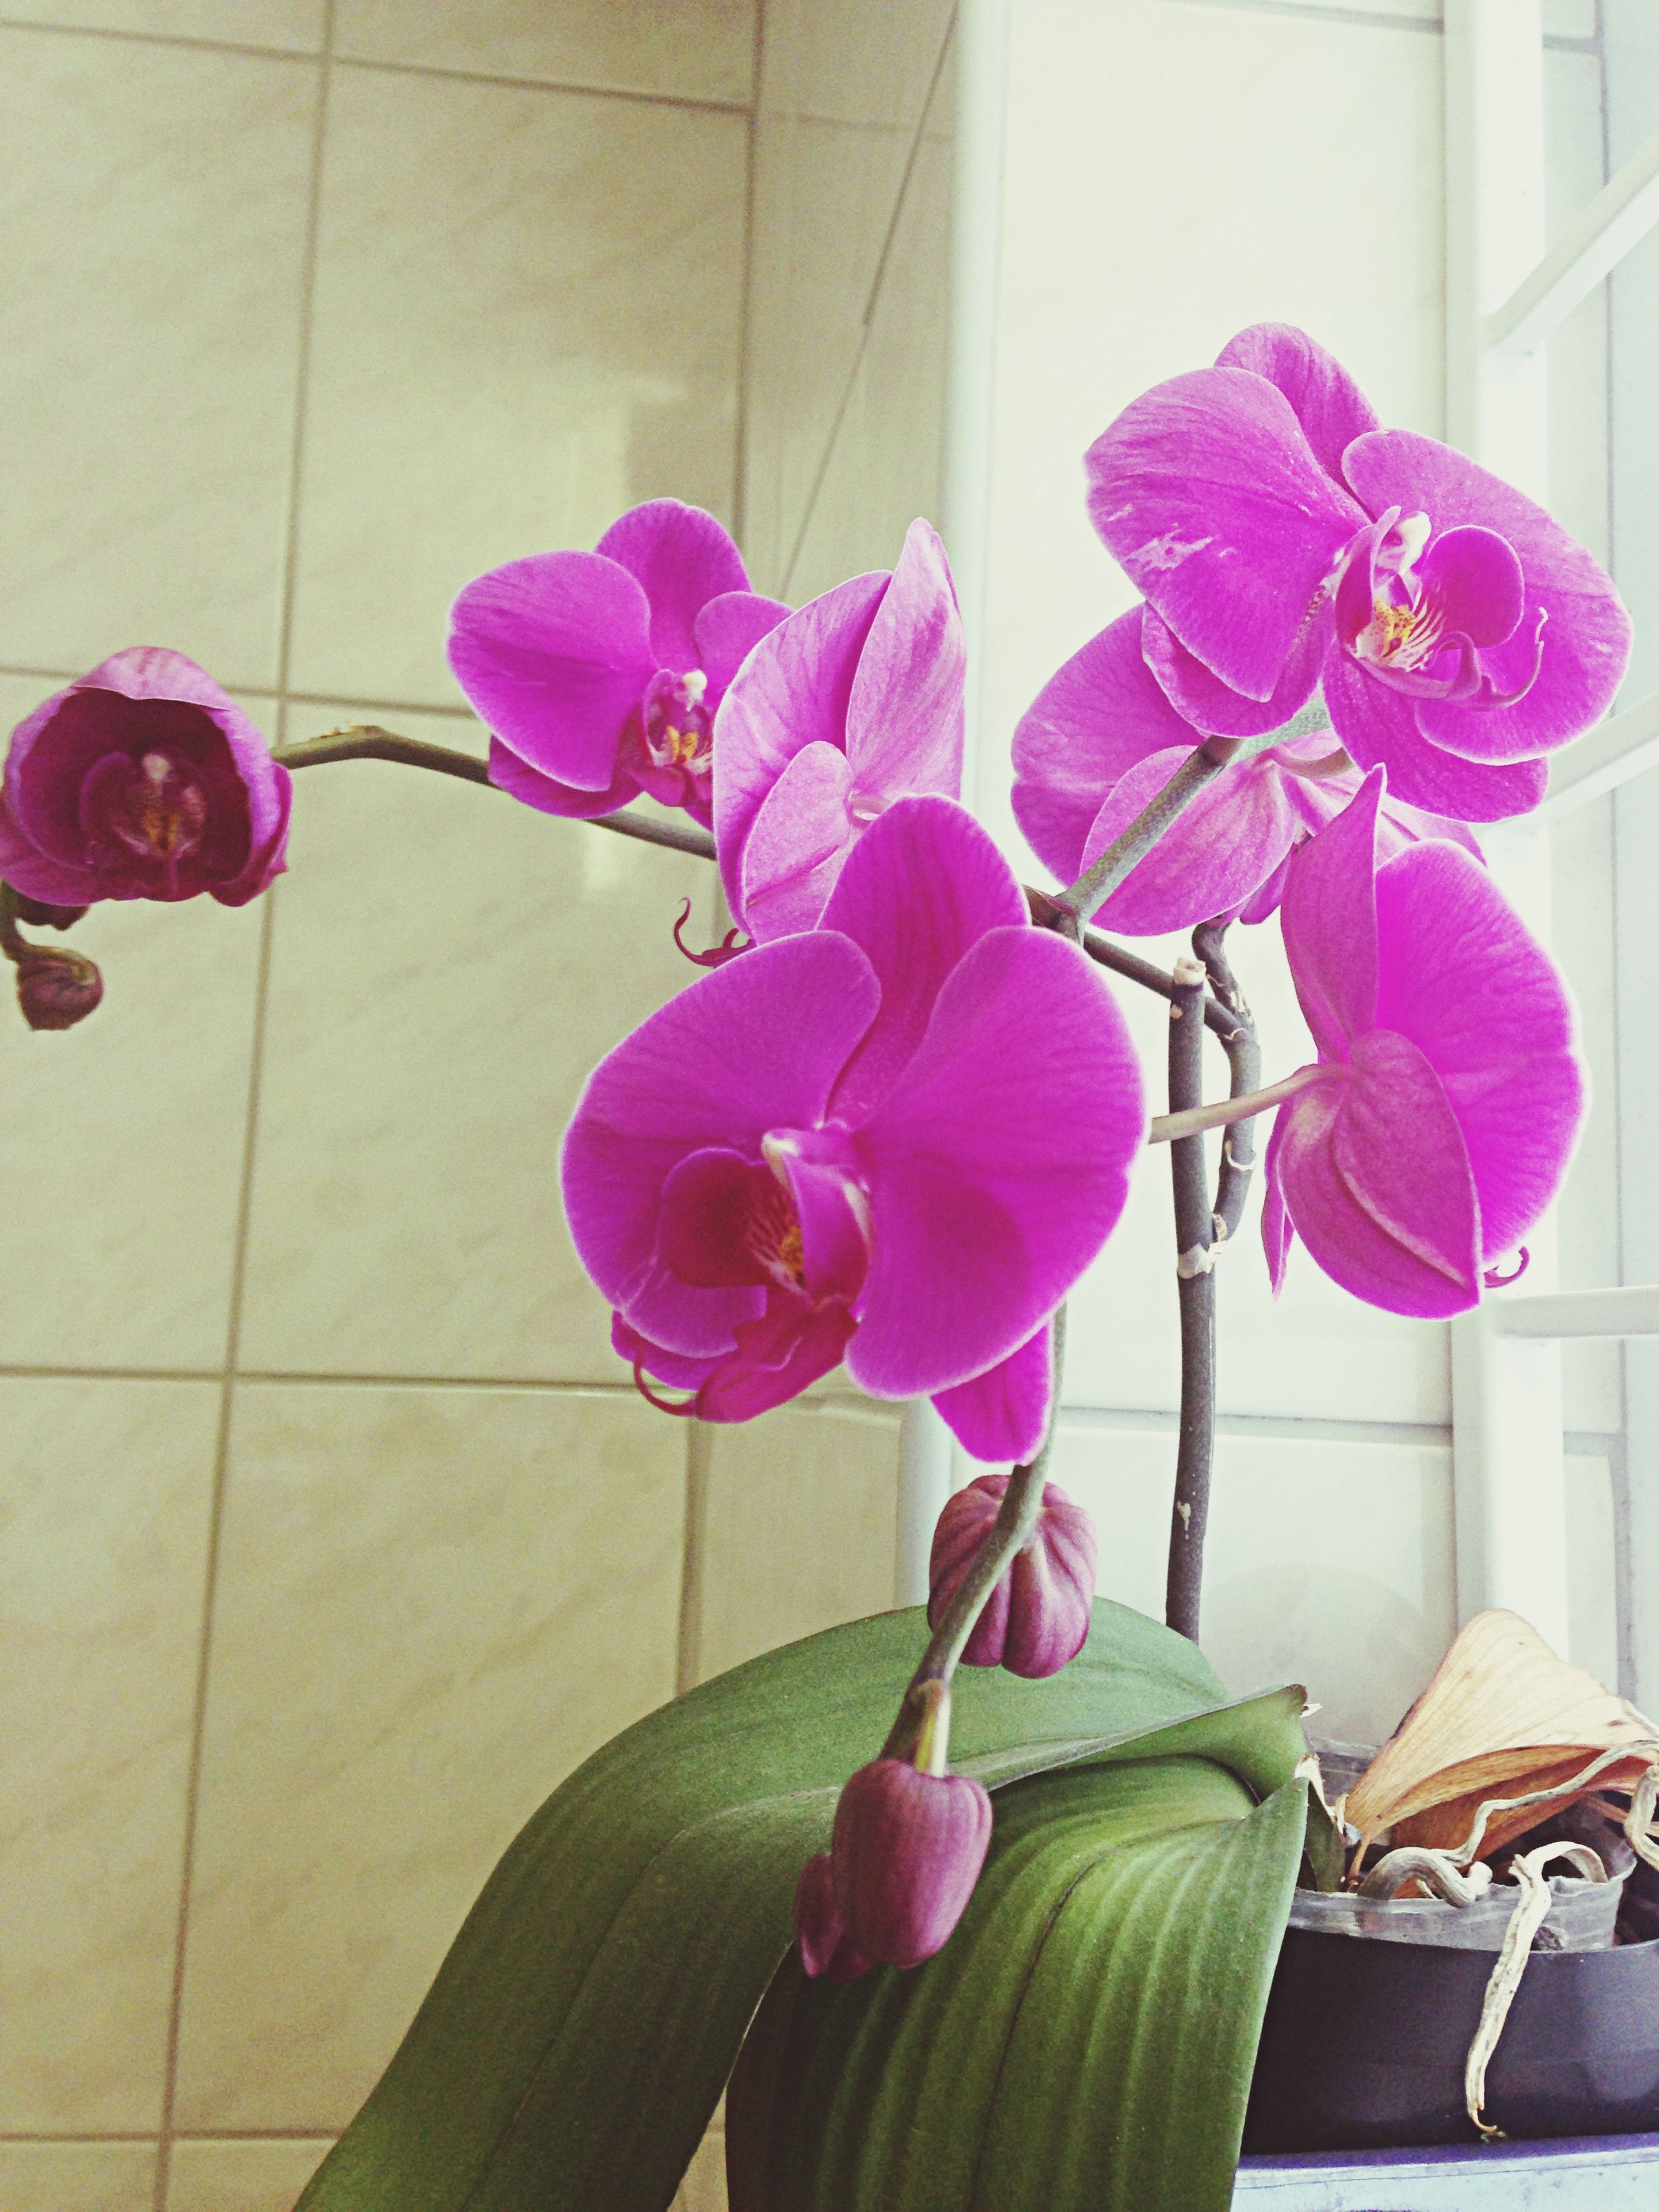 flower, fragility, indoors, freshness, petal, flower head, vase, plant, purple, growth, beauty in nature, leaf, potted plant, flower arrangement, tulip, pink color, stem, wall - building feature, nature, table